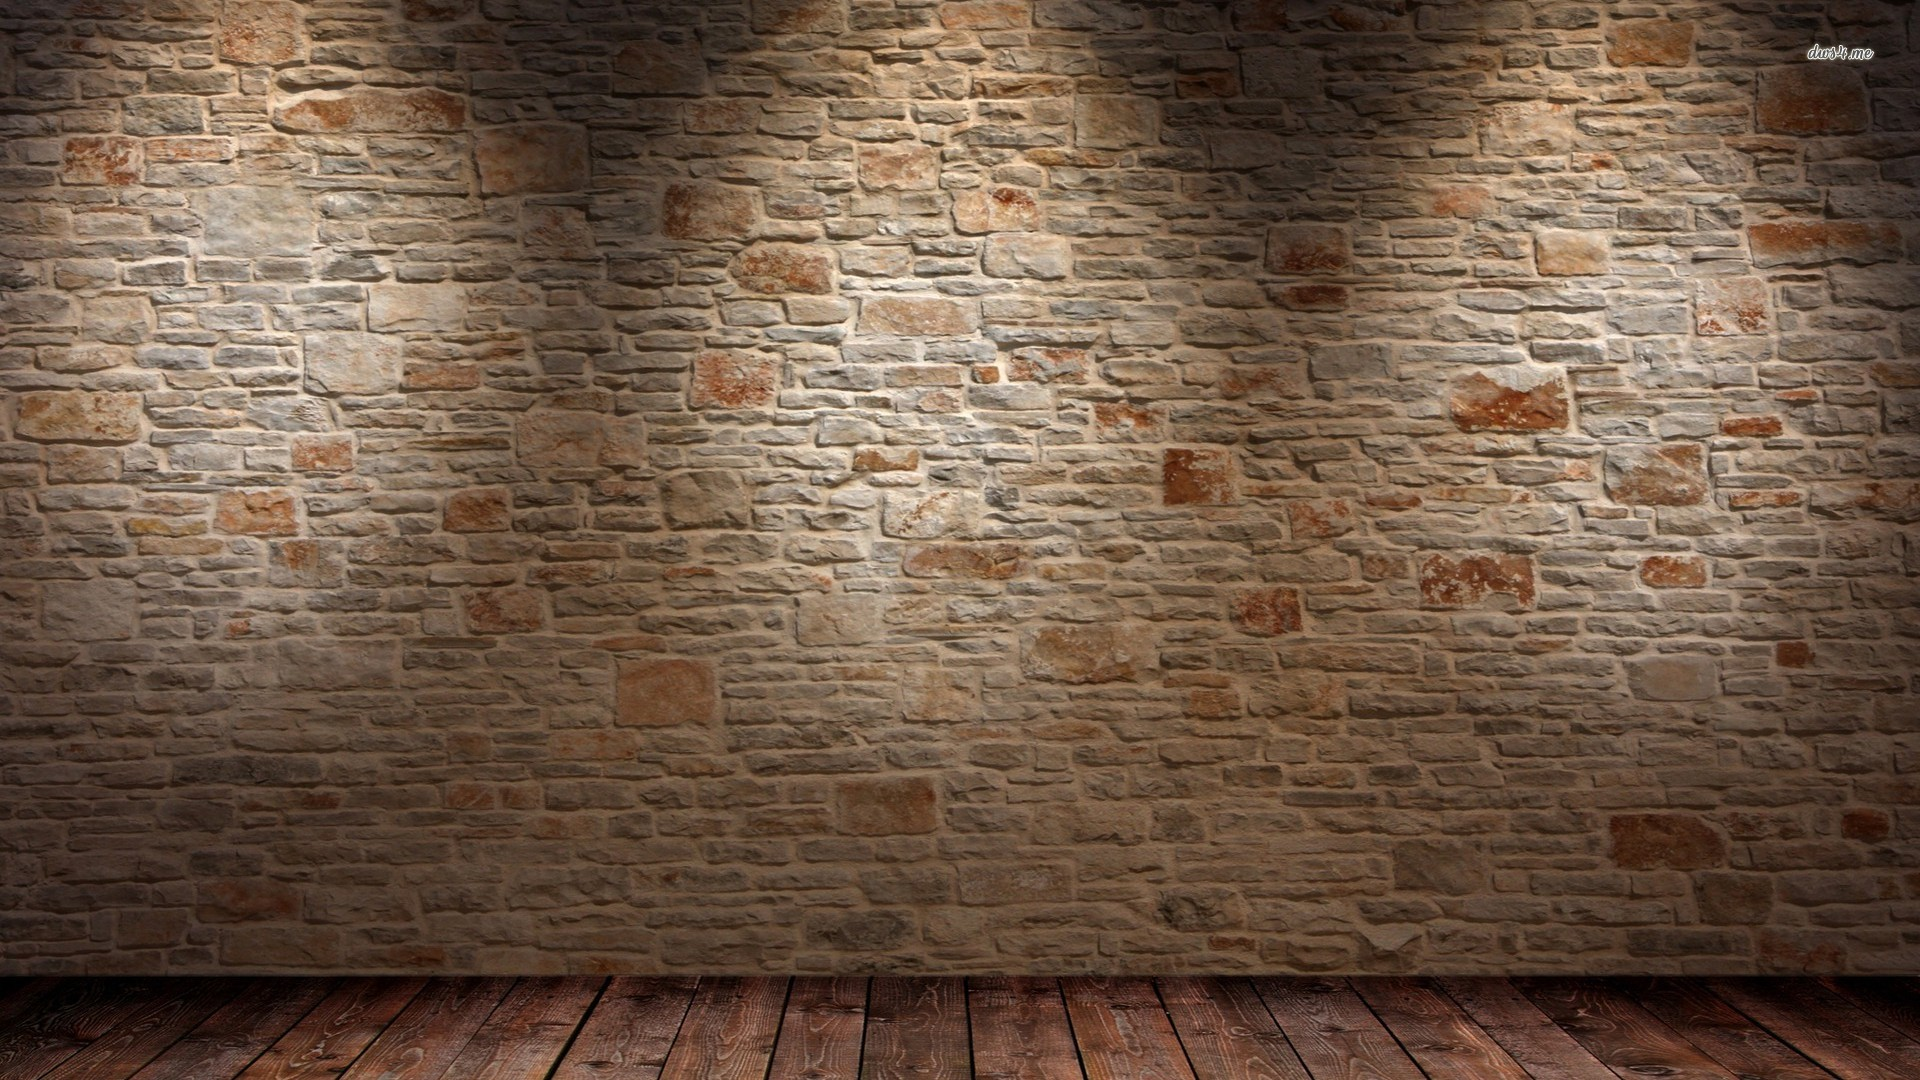 40 hd brick wallpapers backgrounds for free download for Wallpaper images for house walls